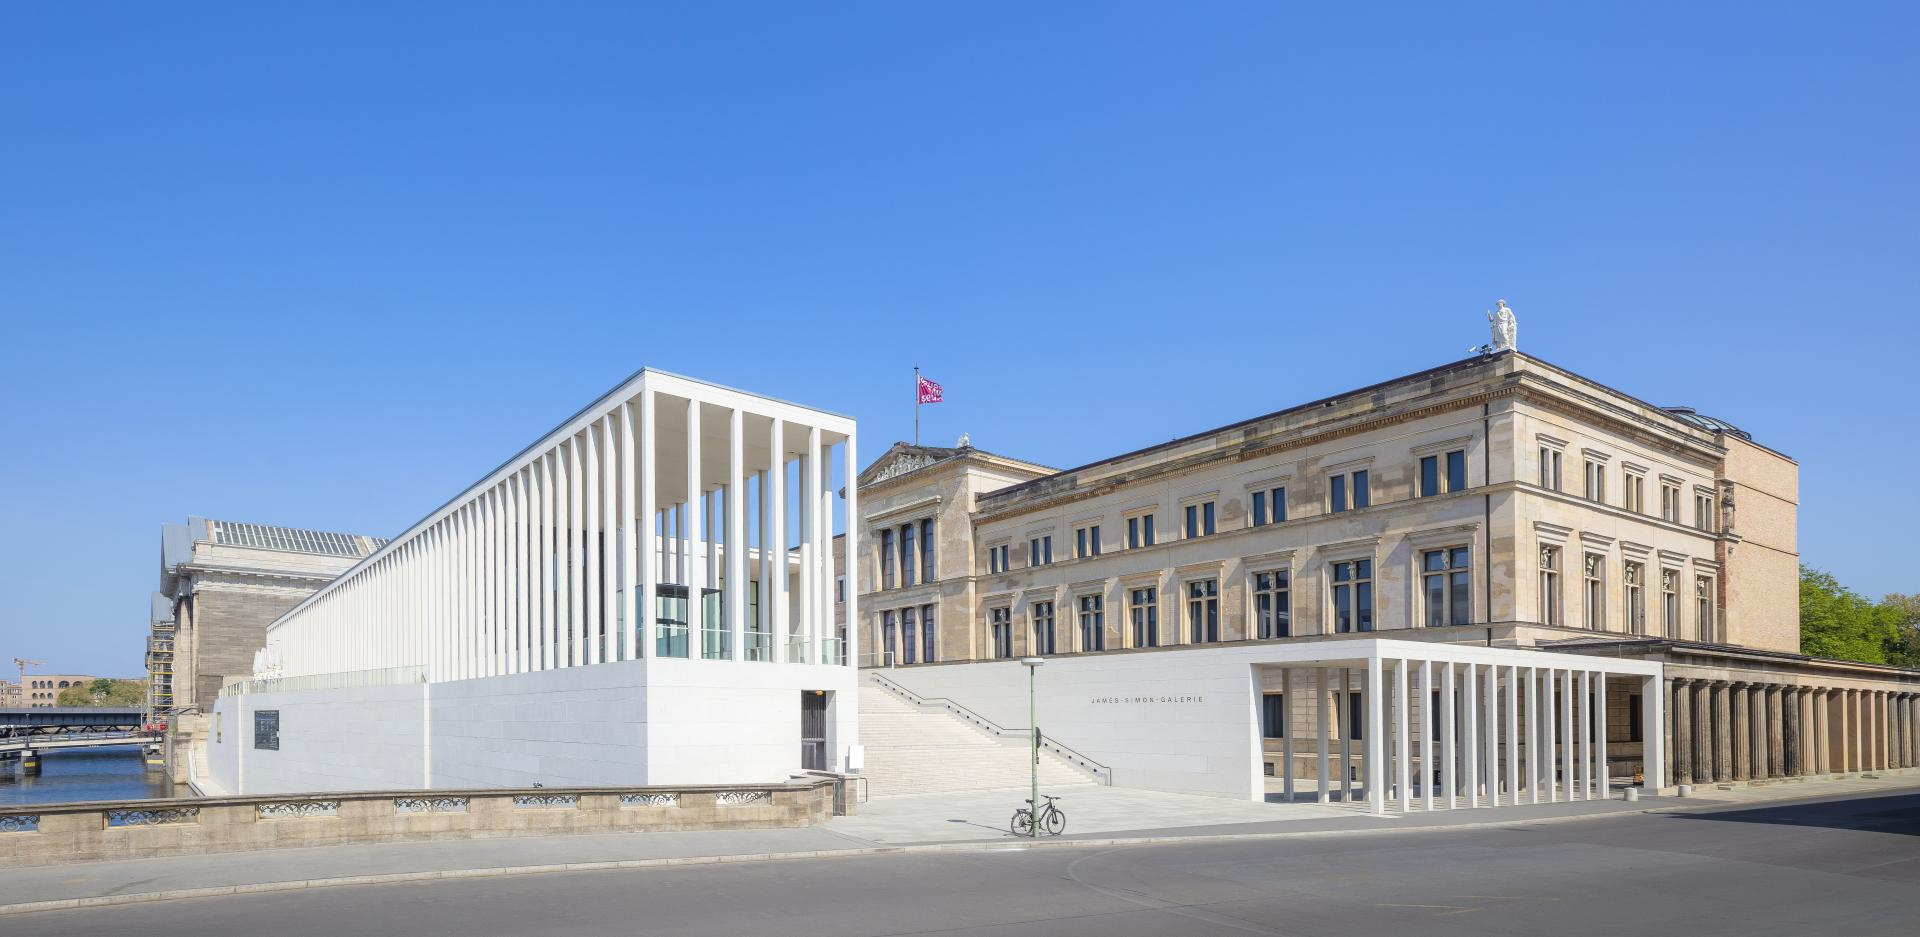 The James-Simon-Galerie on the Museumsinsel Berlin with its colonnades made of white exposed concrete